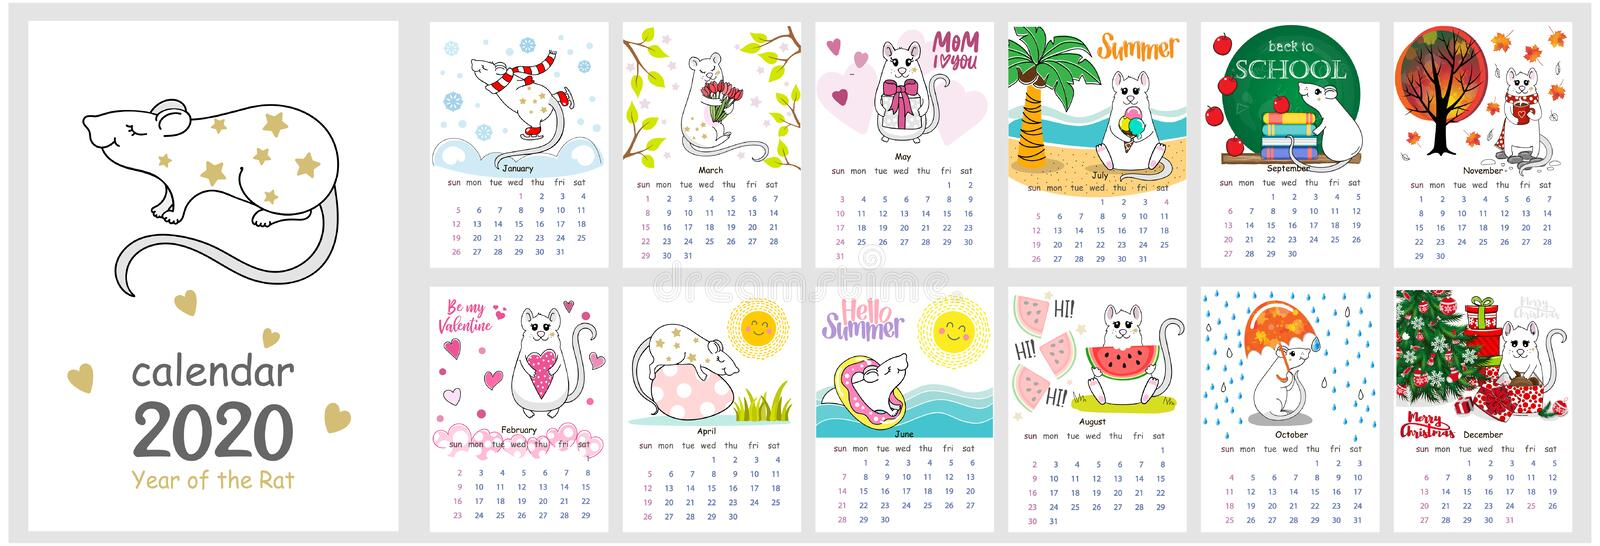 Vector calendar 2020 with Cute Rat. The Chinese calendar 2020 for children with illustration of the main European stock image